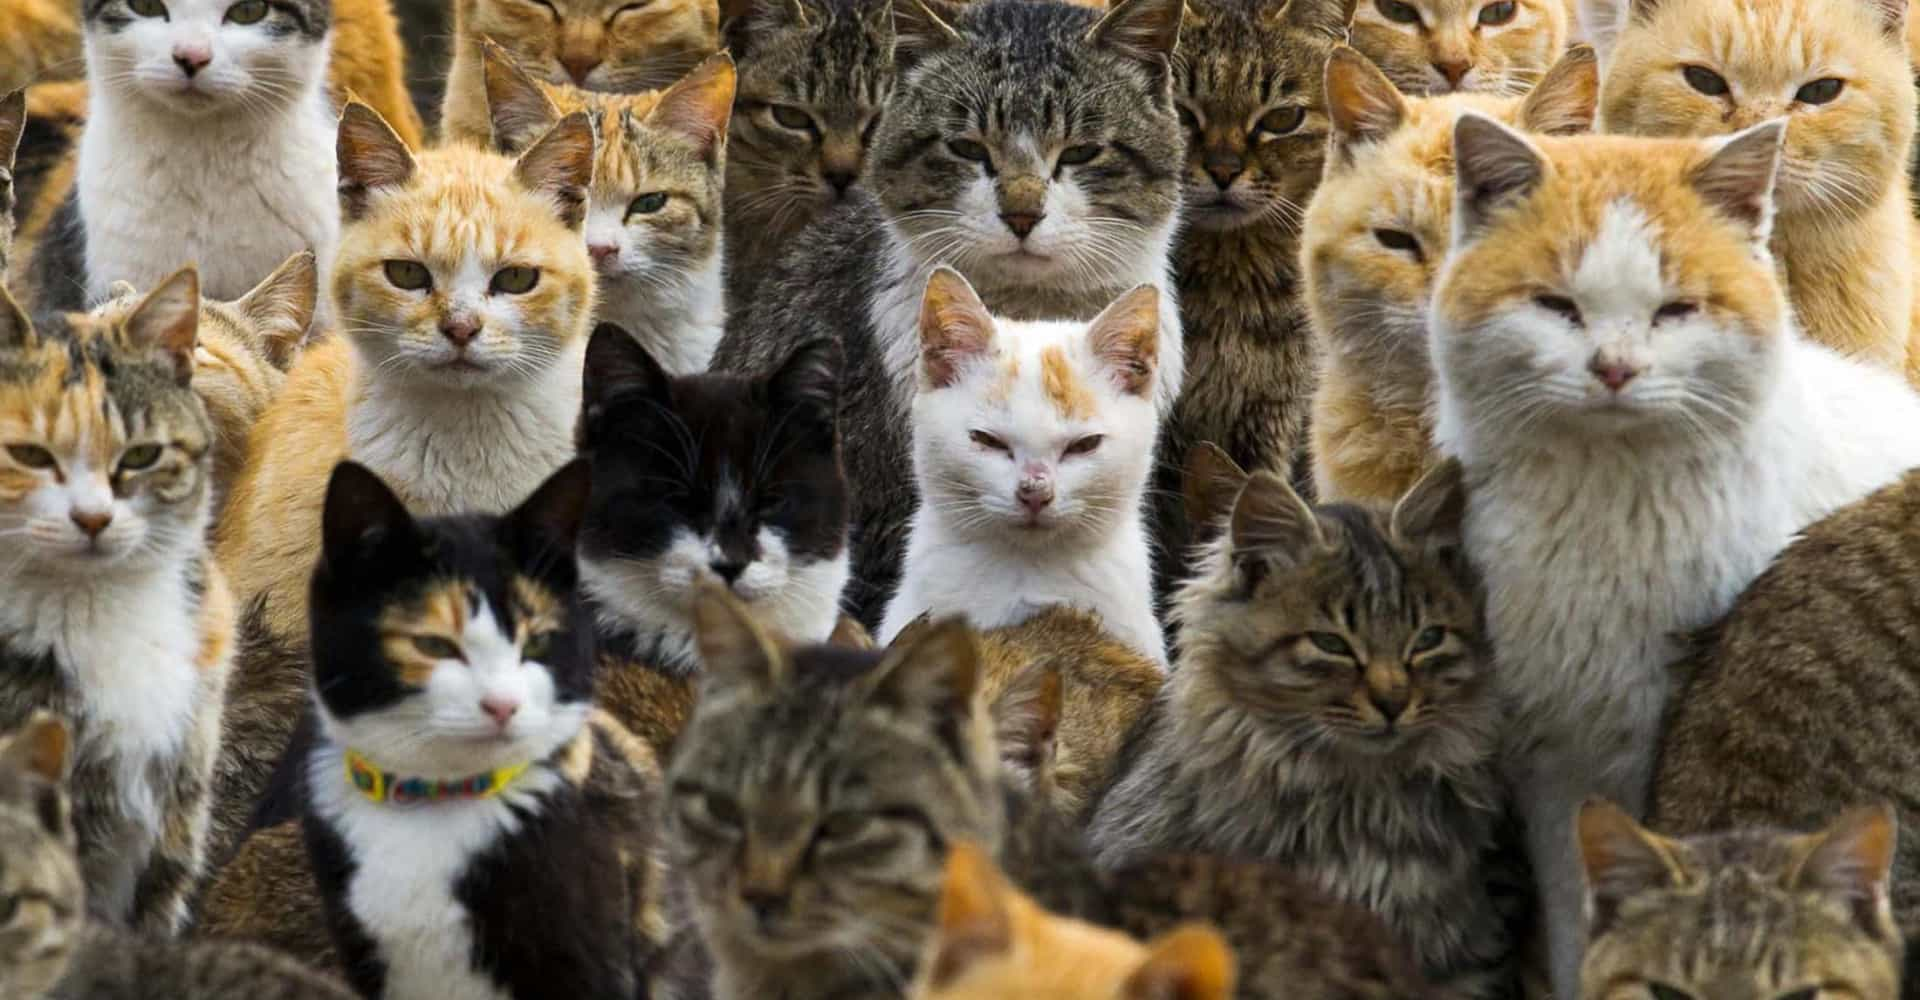 Peek inside Japan's surreal island of cats